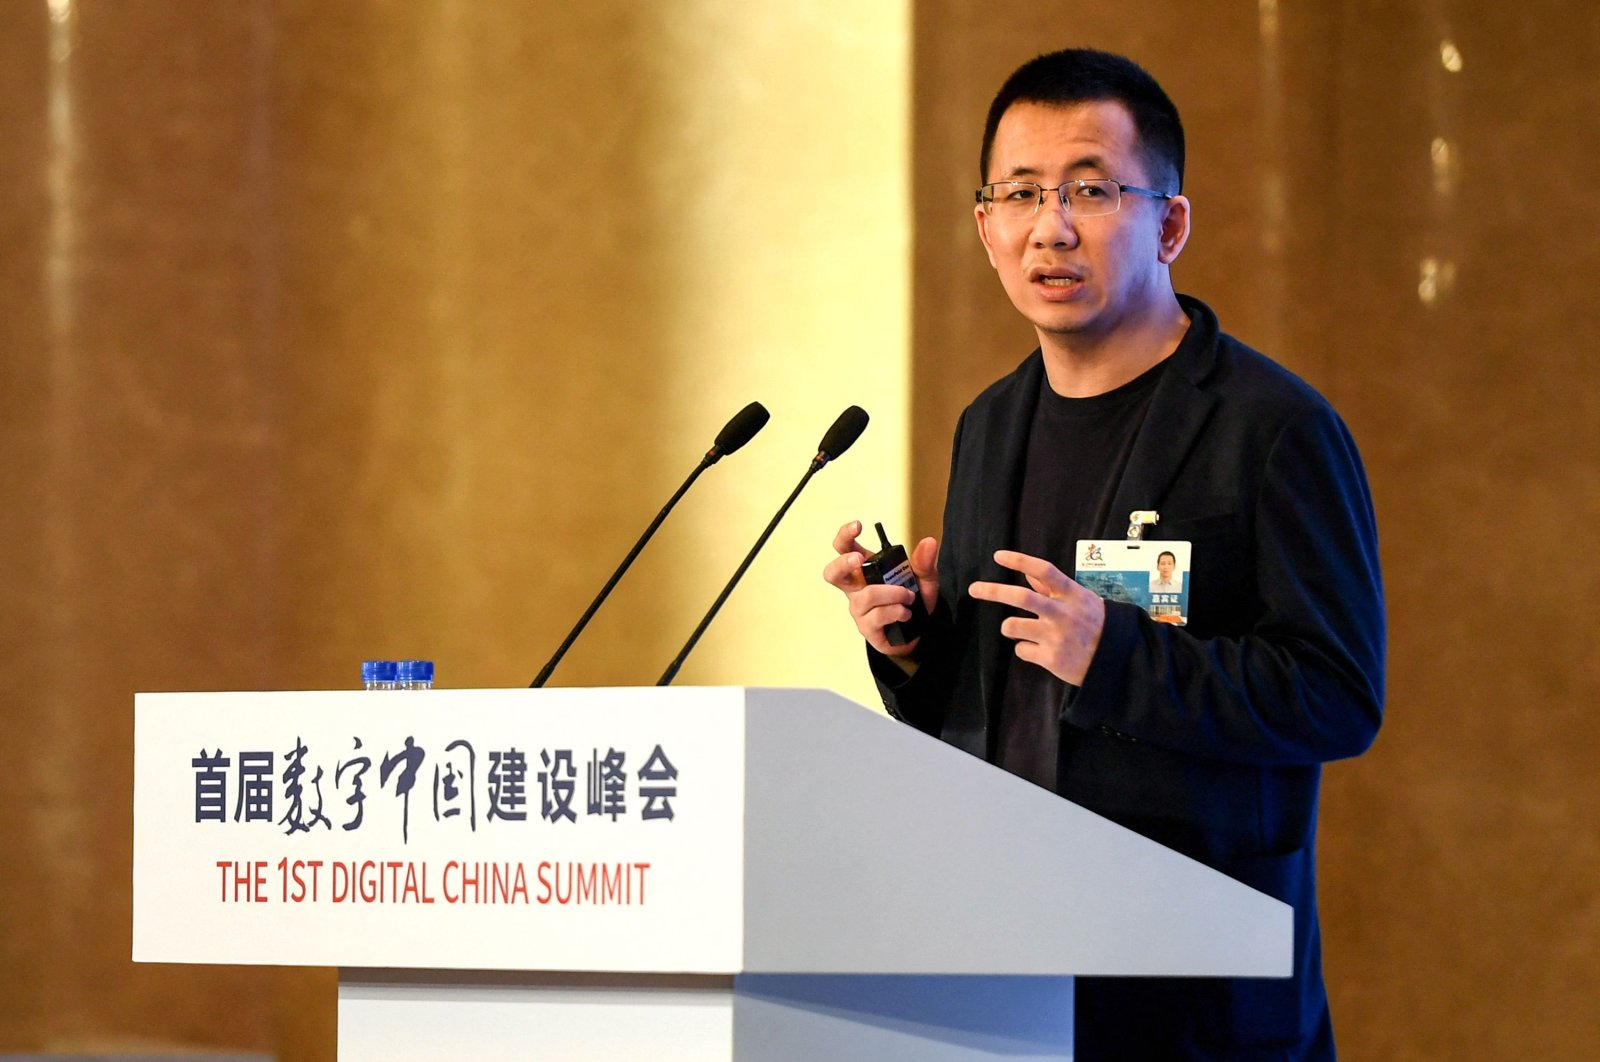 CEO of Bytedance Zhang Yiming speaking during the 1st Digital China Summit in Fuzhou, in eastern Fujian province, China, April 23, 2018. (AFP Photo)